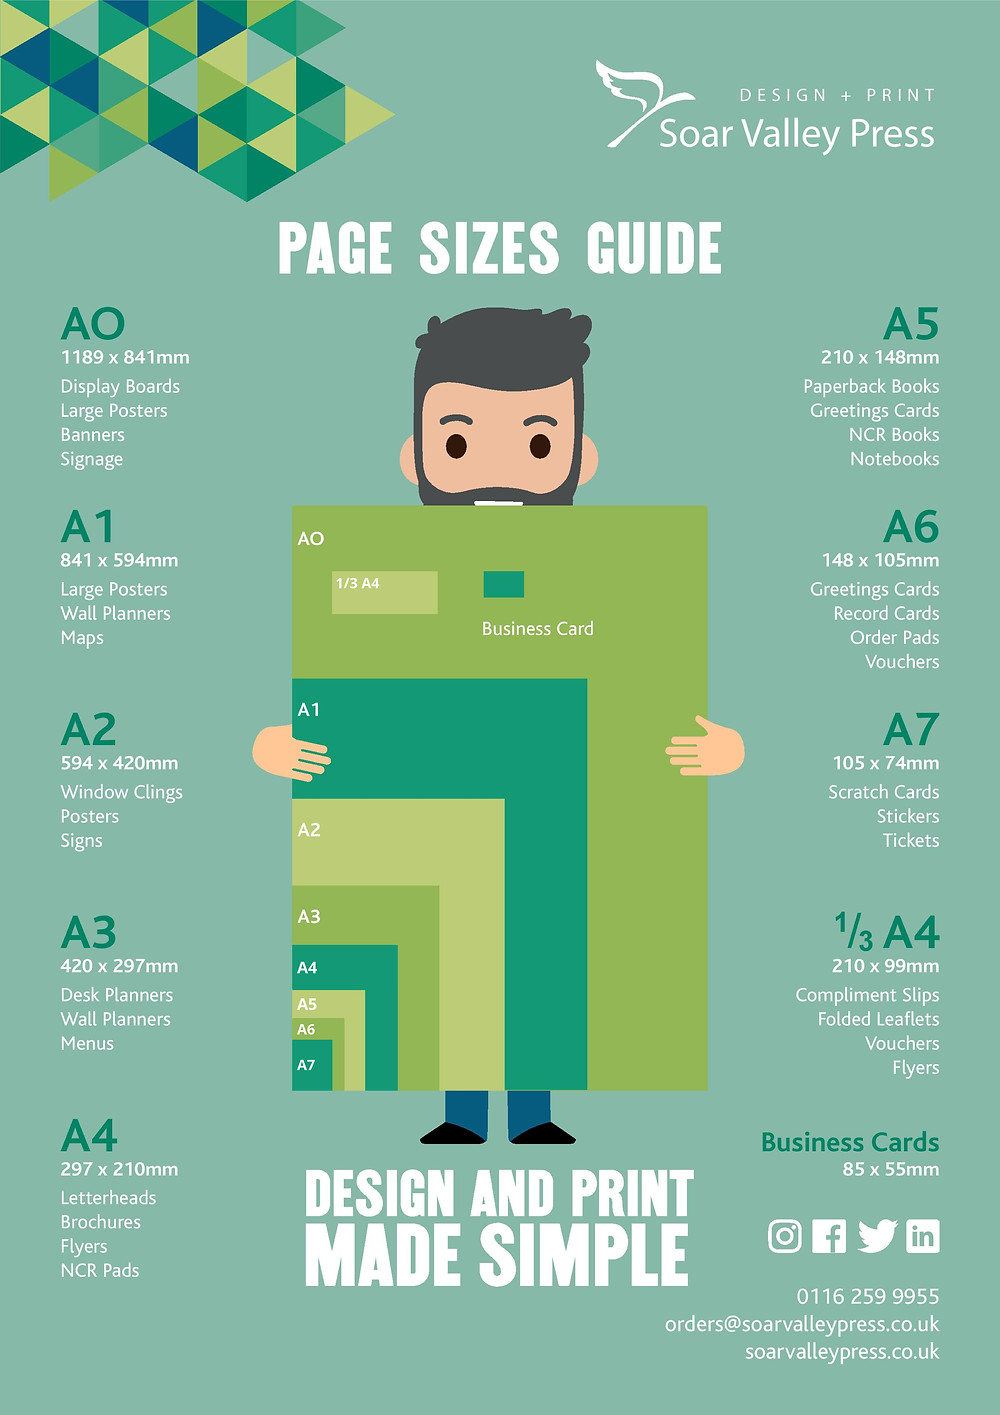 An image showing the popular page sizes for print and their uses.